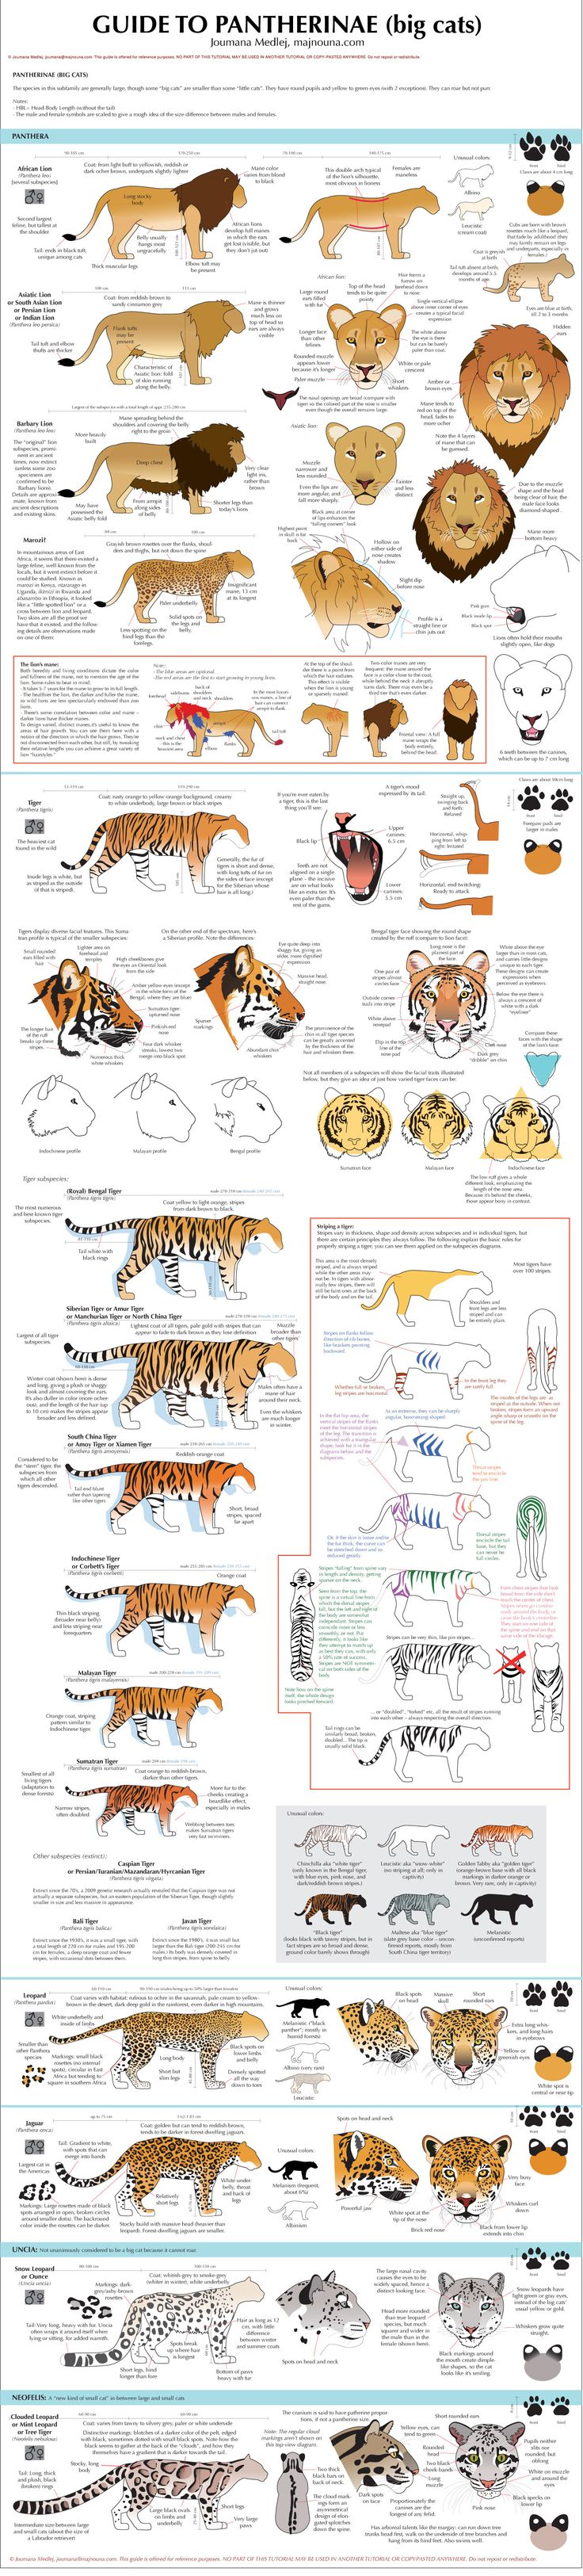 Guide to Big cats by Majnouna.deviantart.com on @deviantART